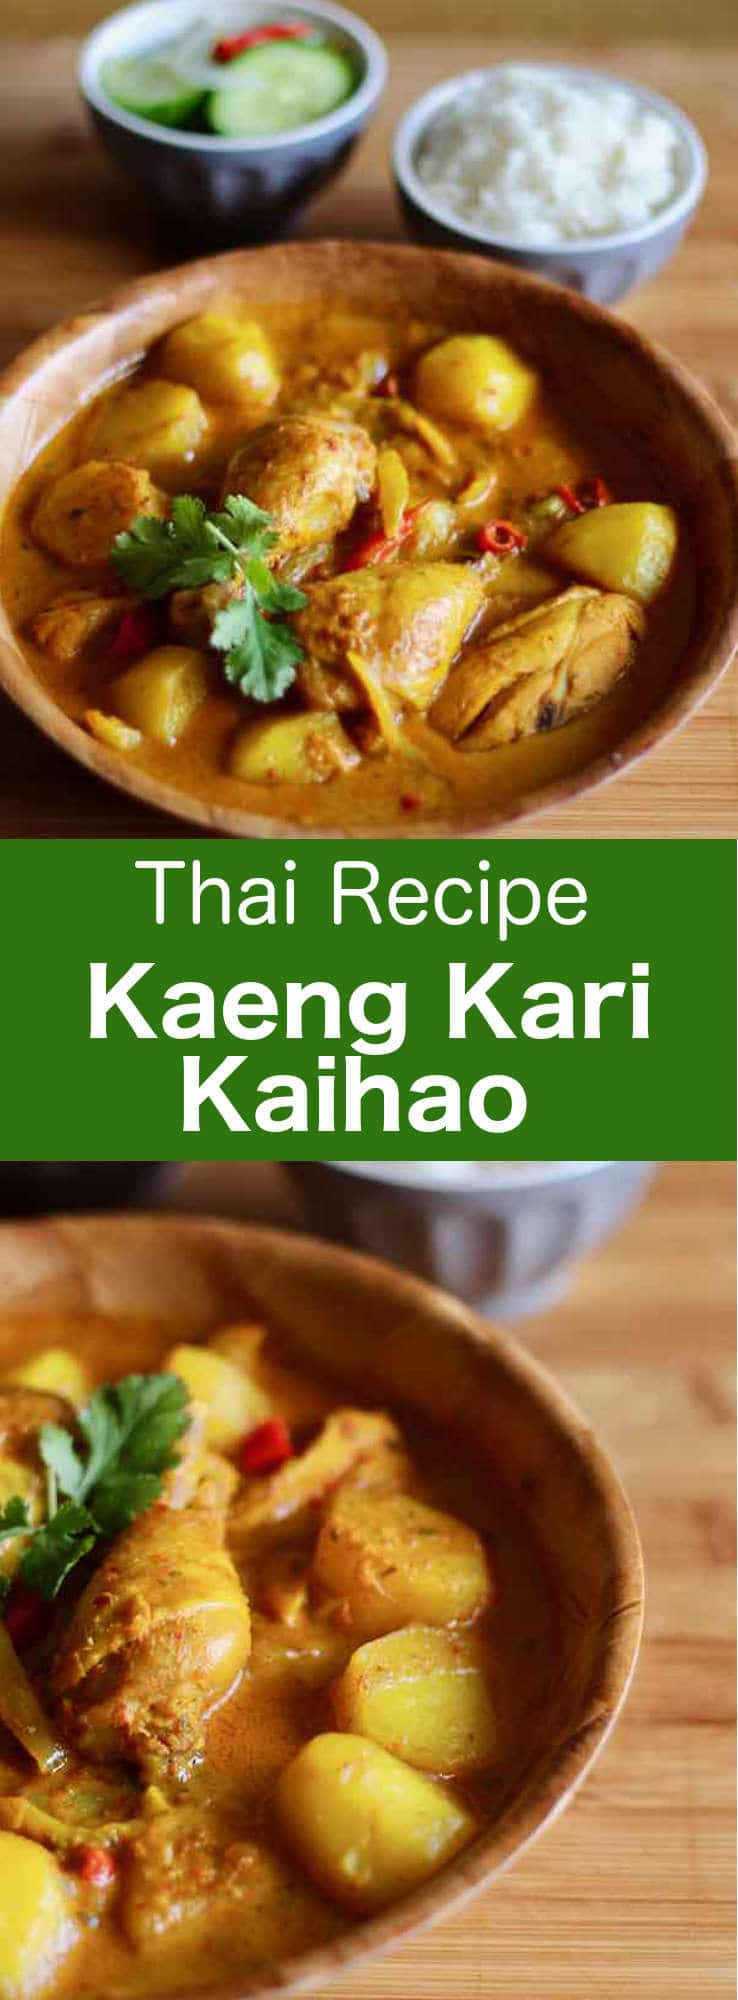 Kaeng kari kai is a Thai yellow curry with chicken. The curry paste that is used is a mixture of spices and herbs that are pounded with a mortar and pestle. #Thai #196flavors